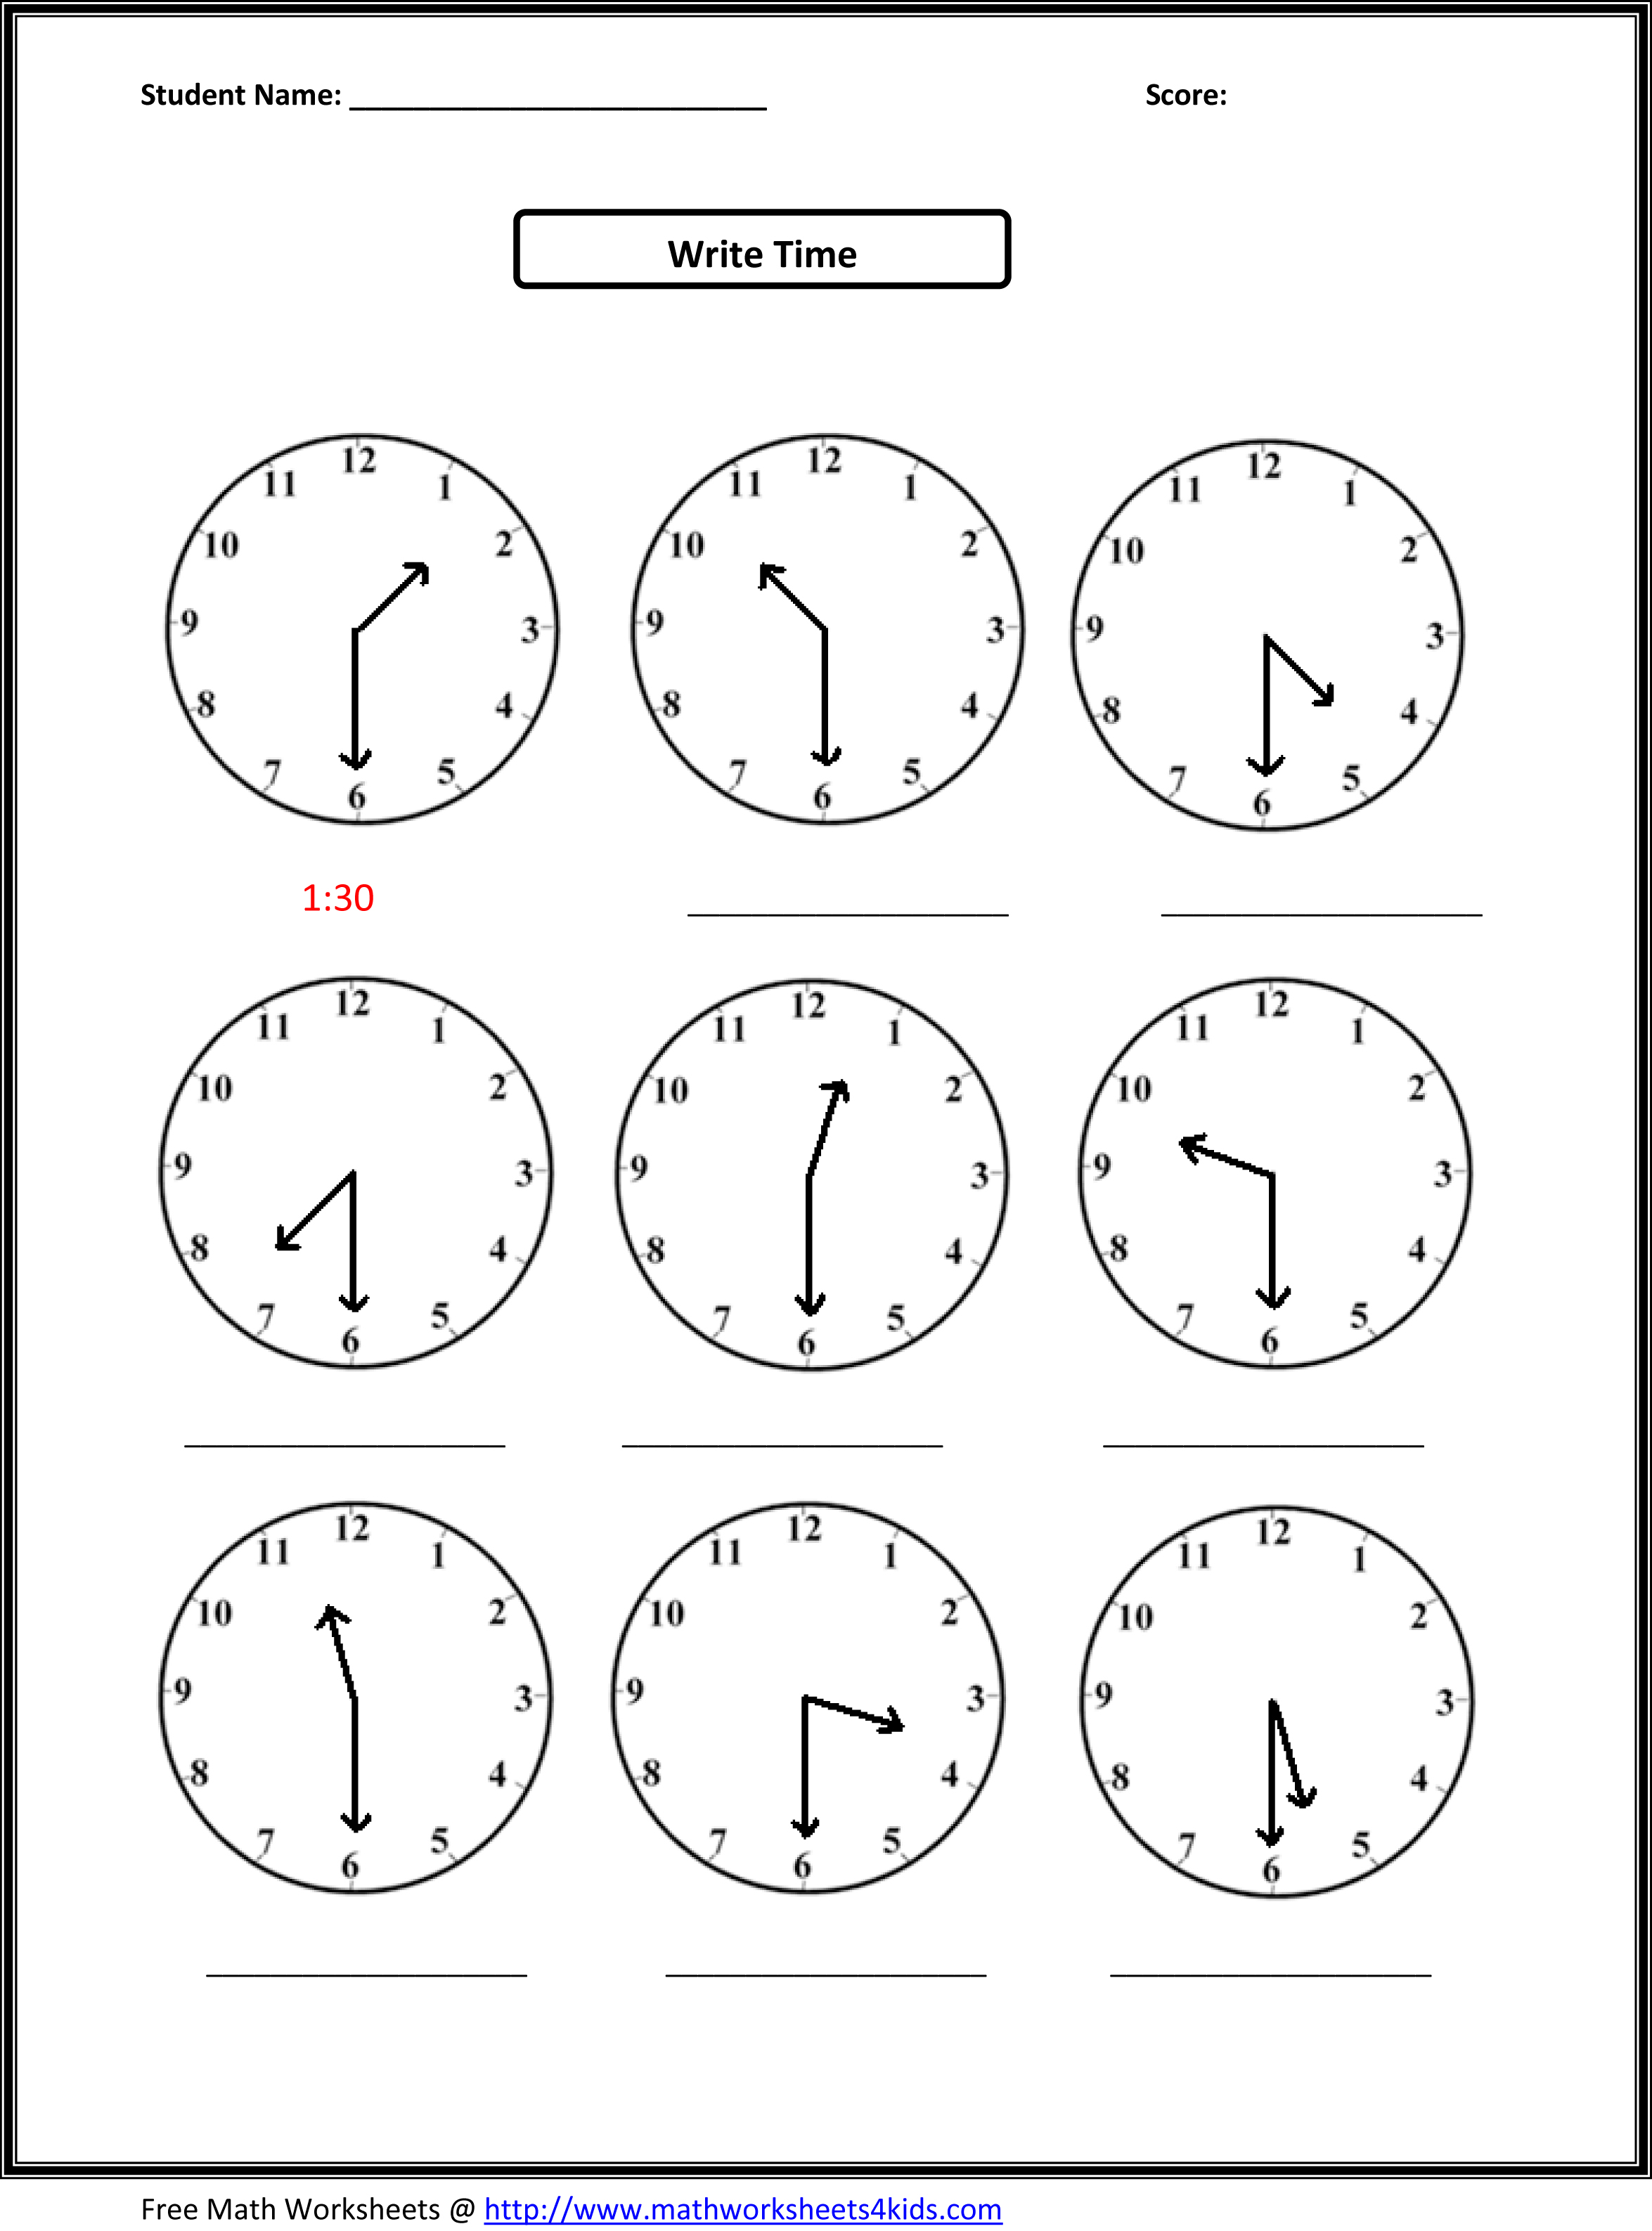 Worksheet For Telling Time For Grade 3